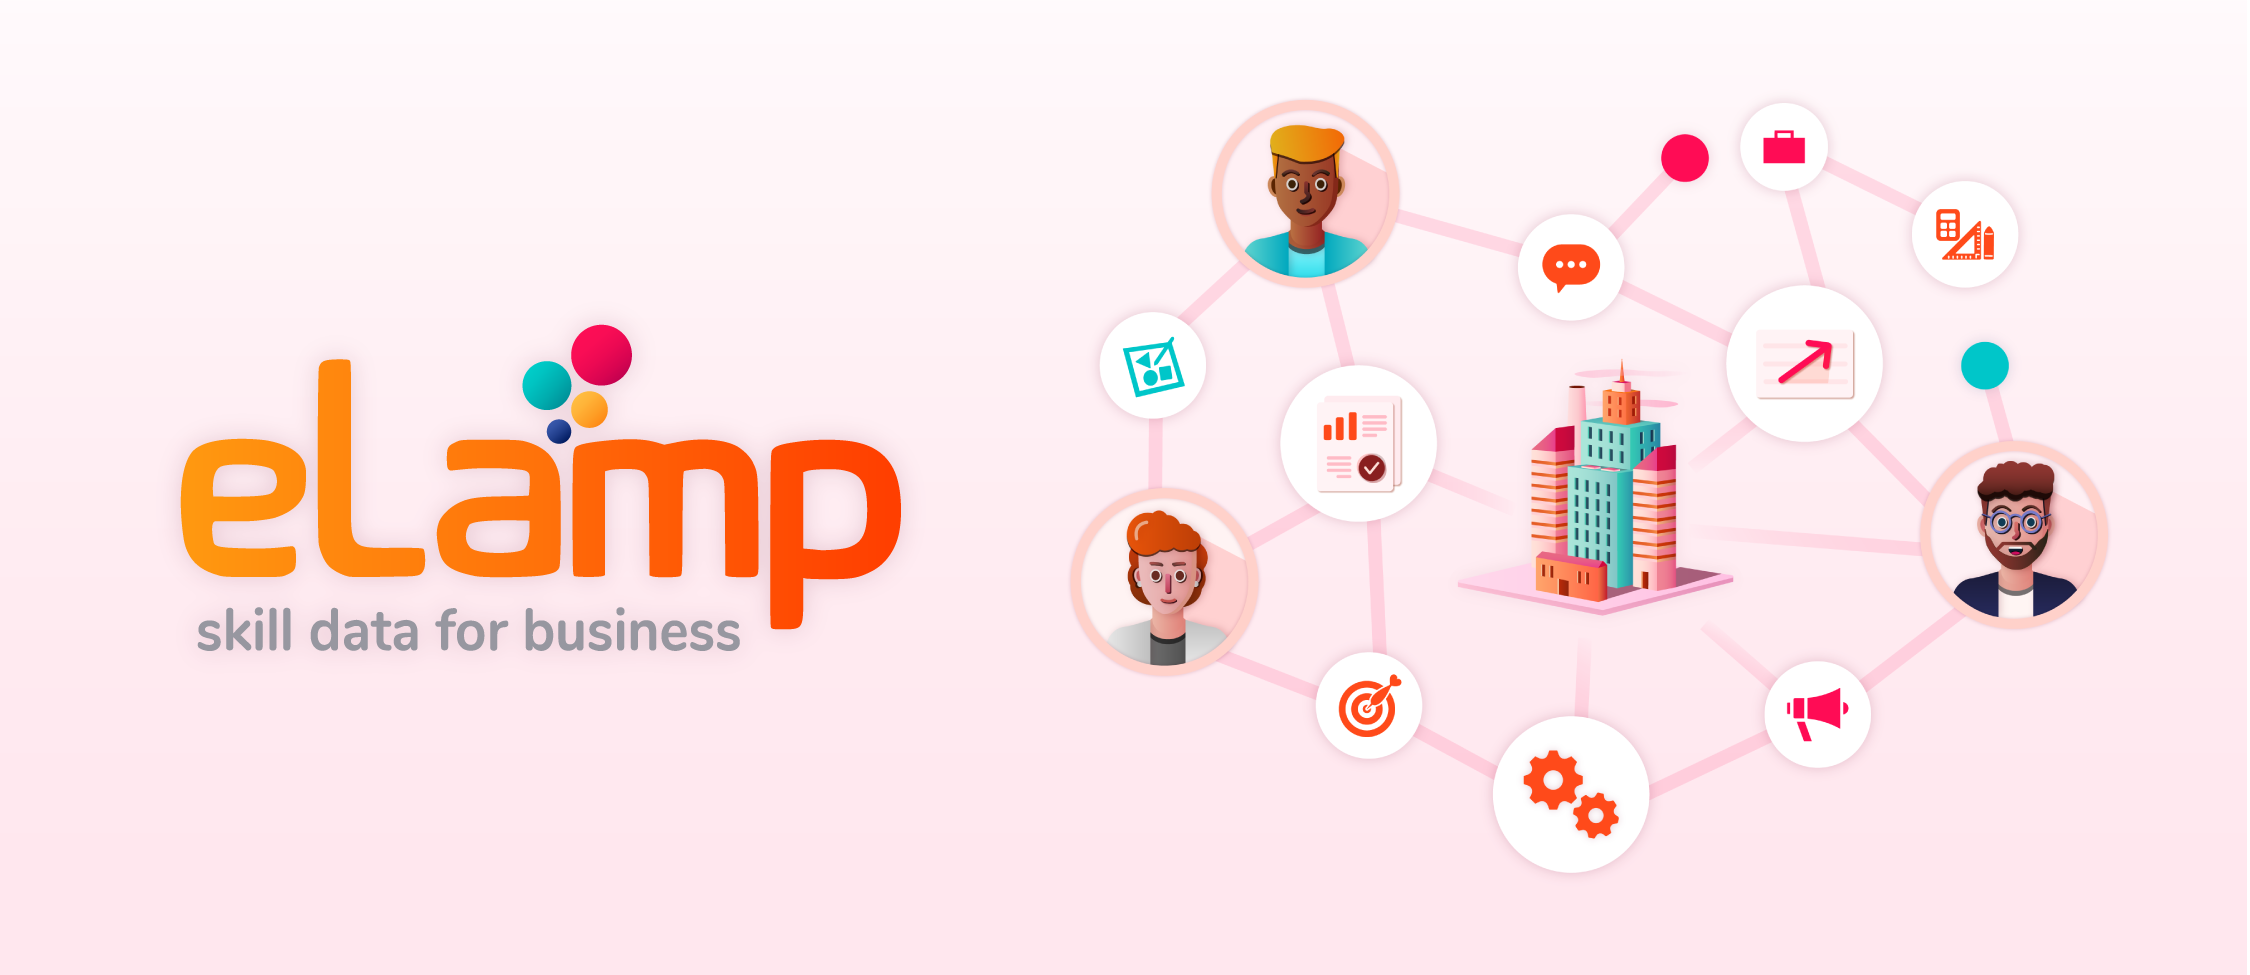 eLamp - Skill data for business